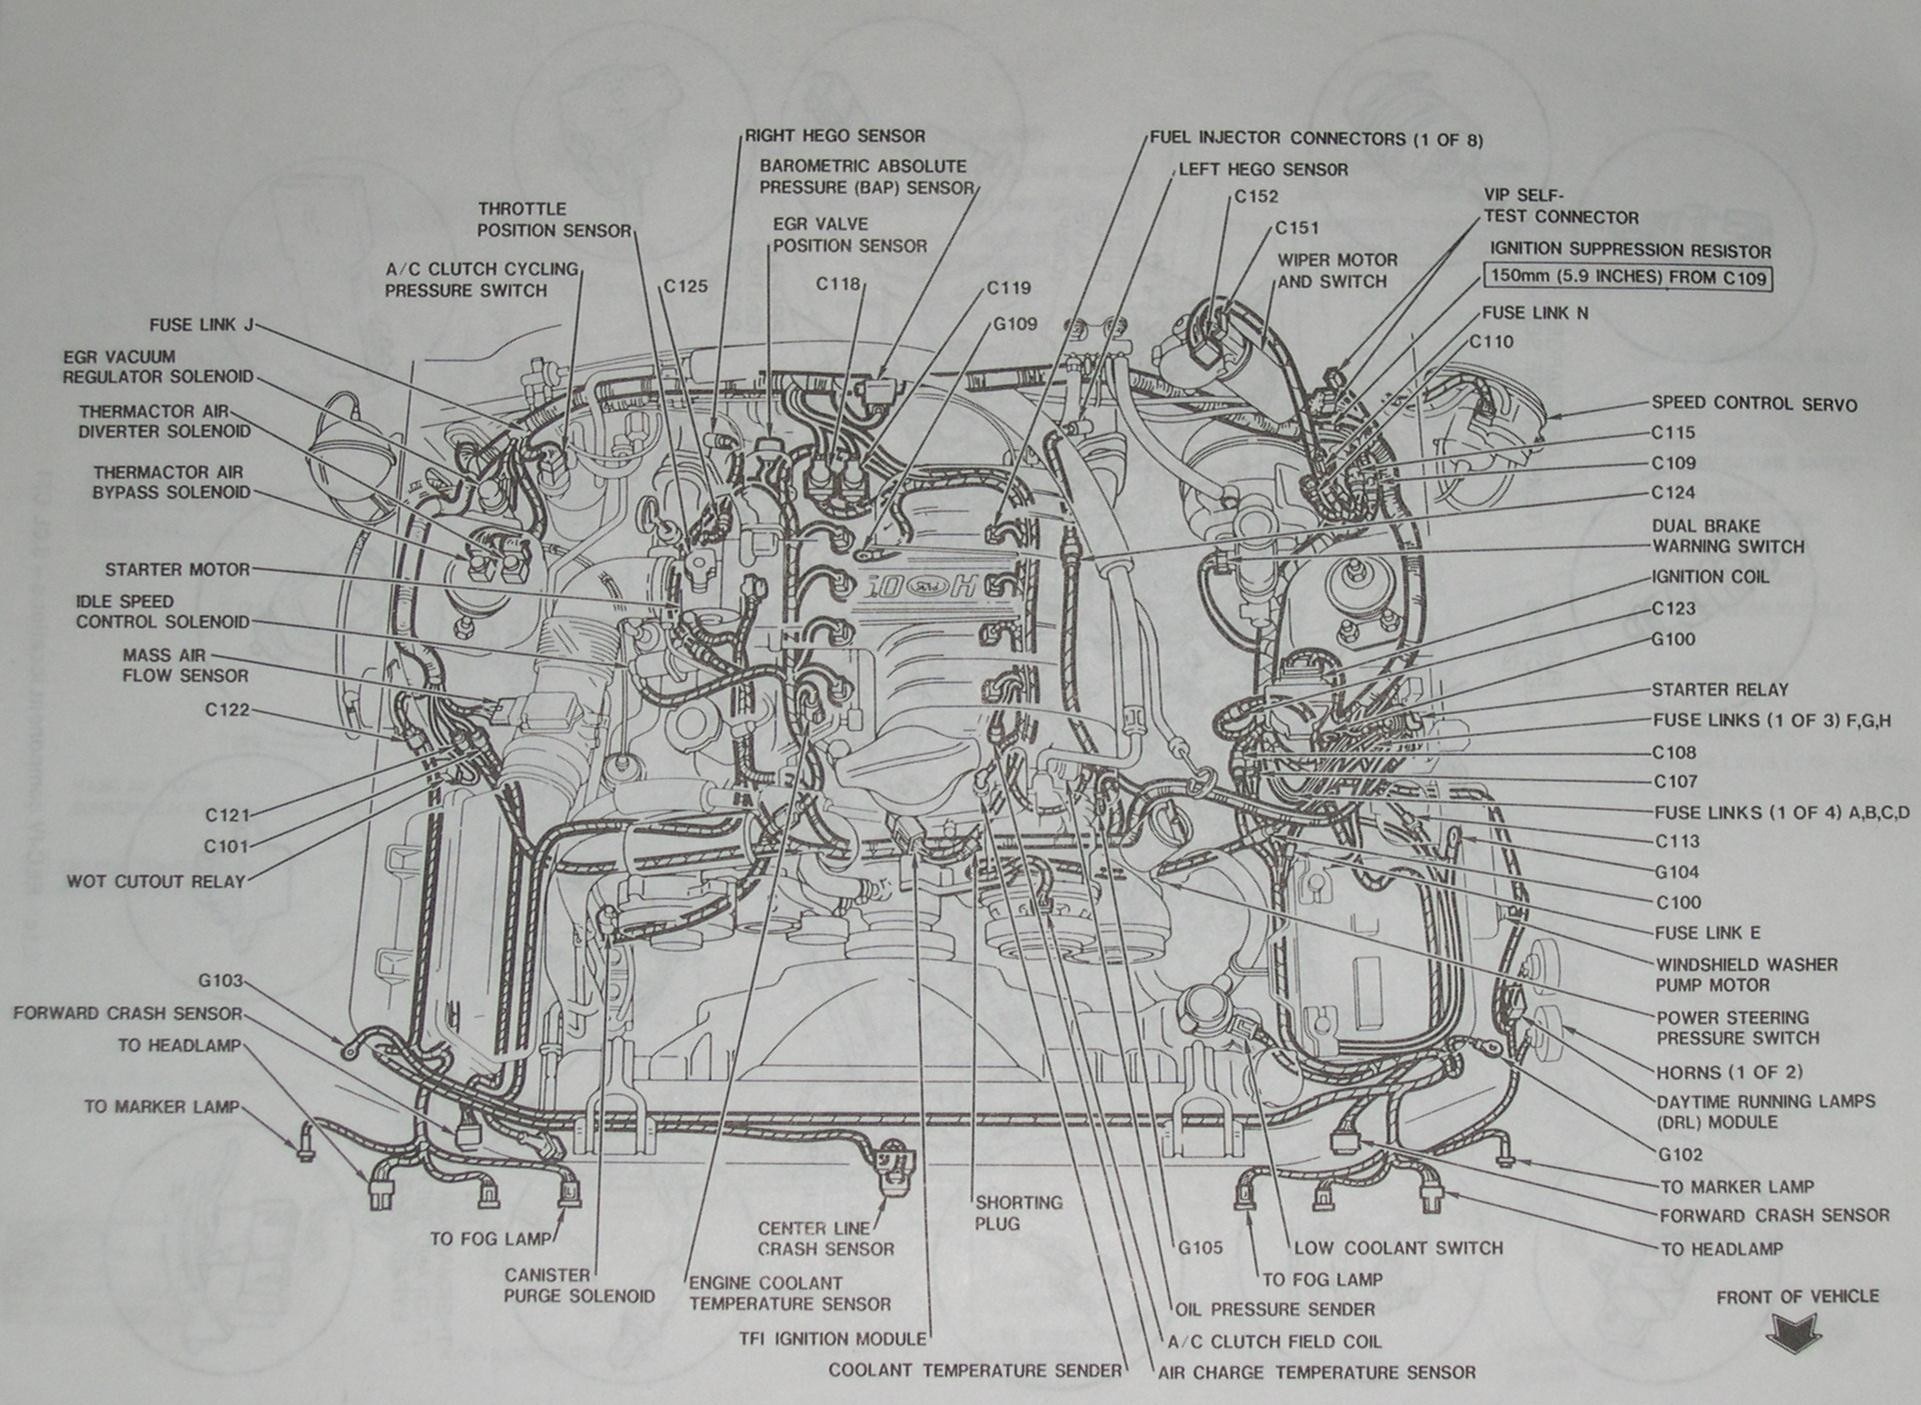 98 Grand Marquis Engine Diagram Wiring Library 1996 Ford Thunderbird Mercury